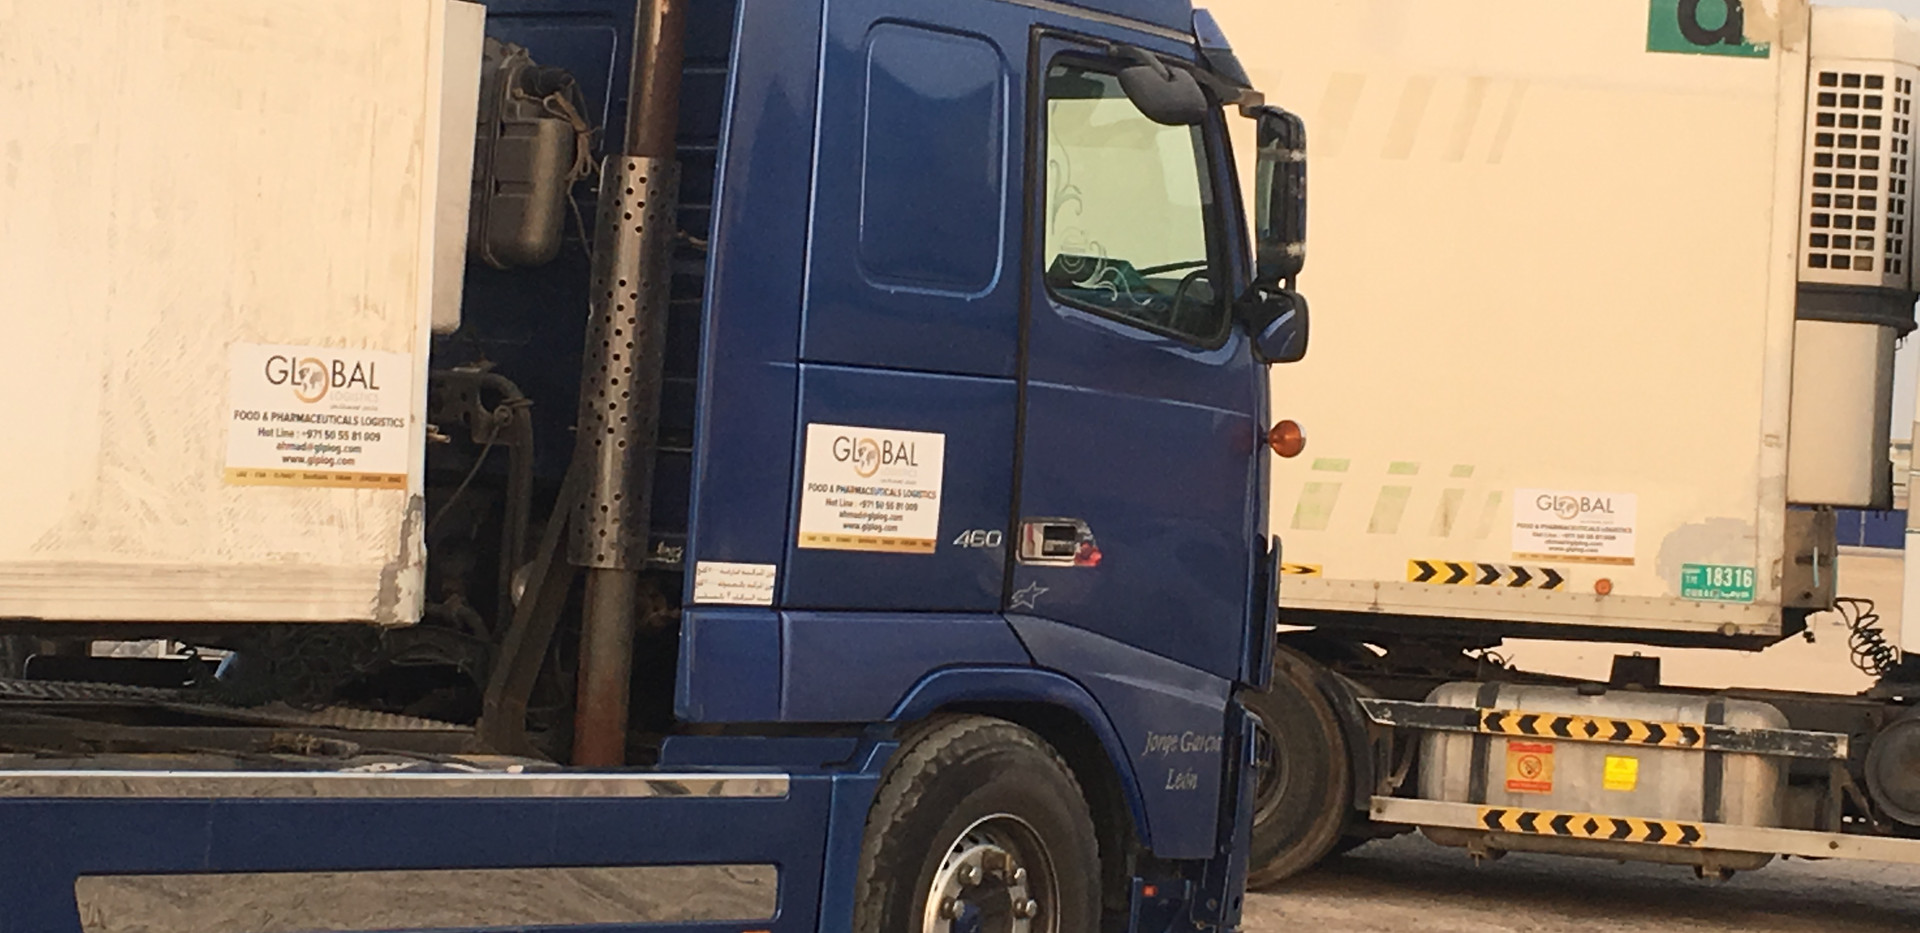 Global Logistics Freight Forwarding , it is Global Logistics , the best logistics company in Dubai